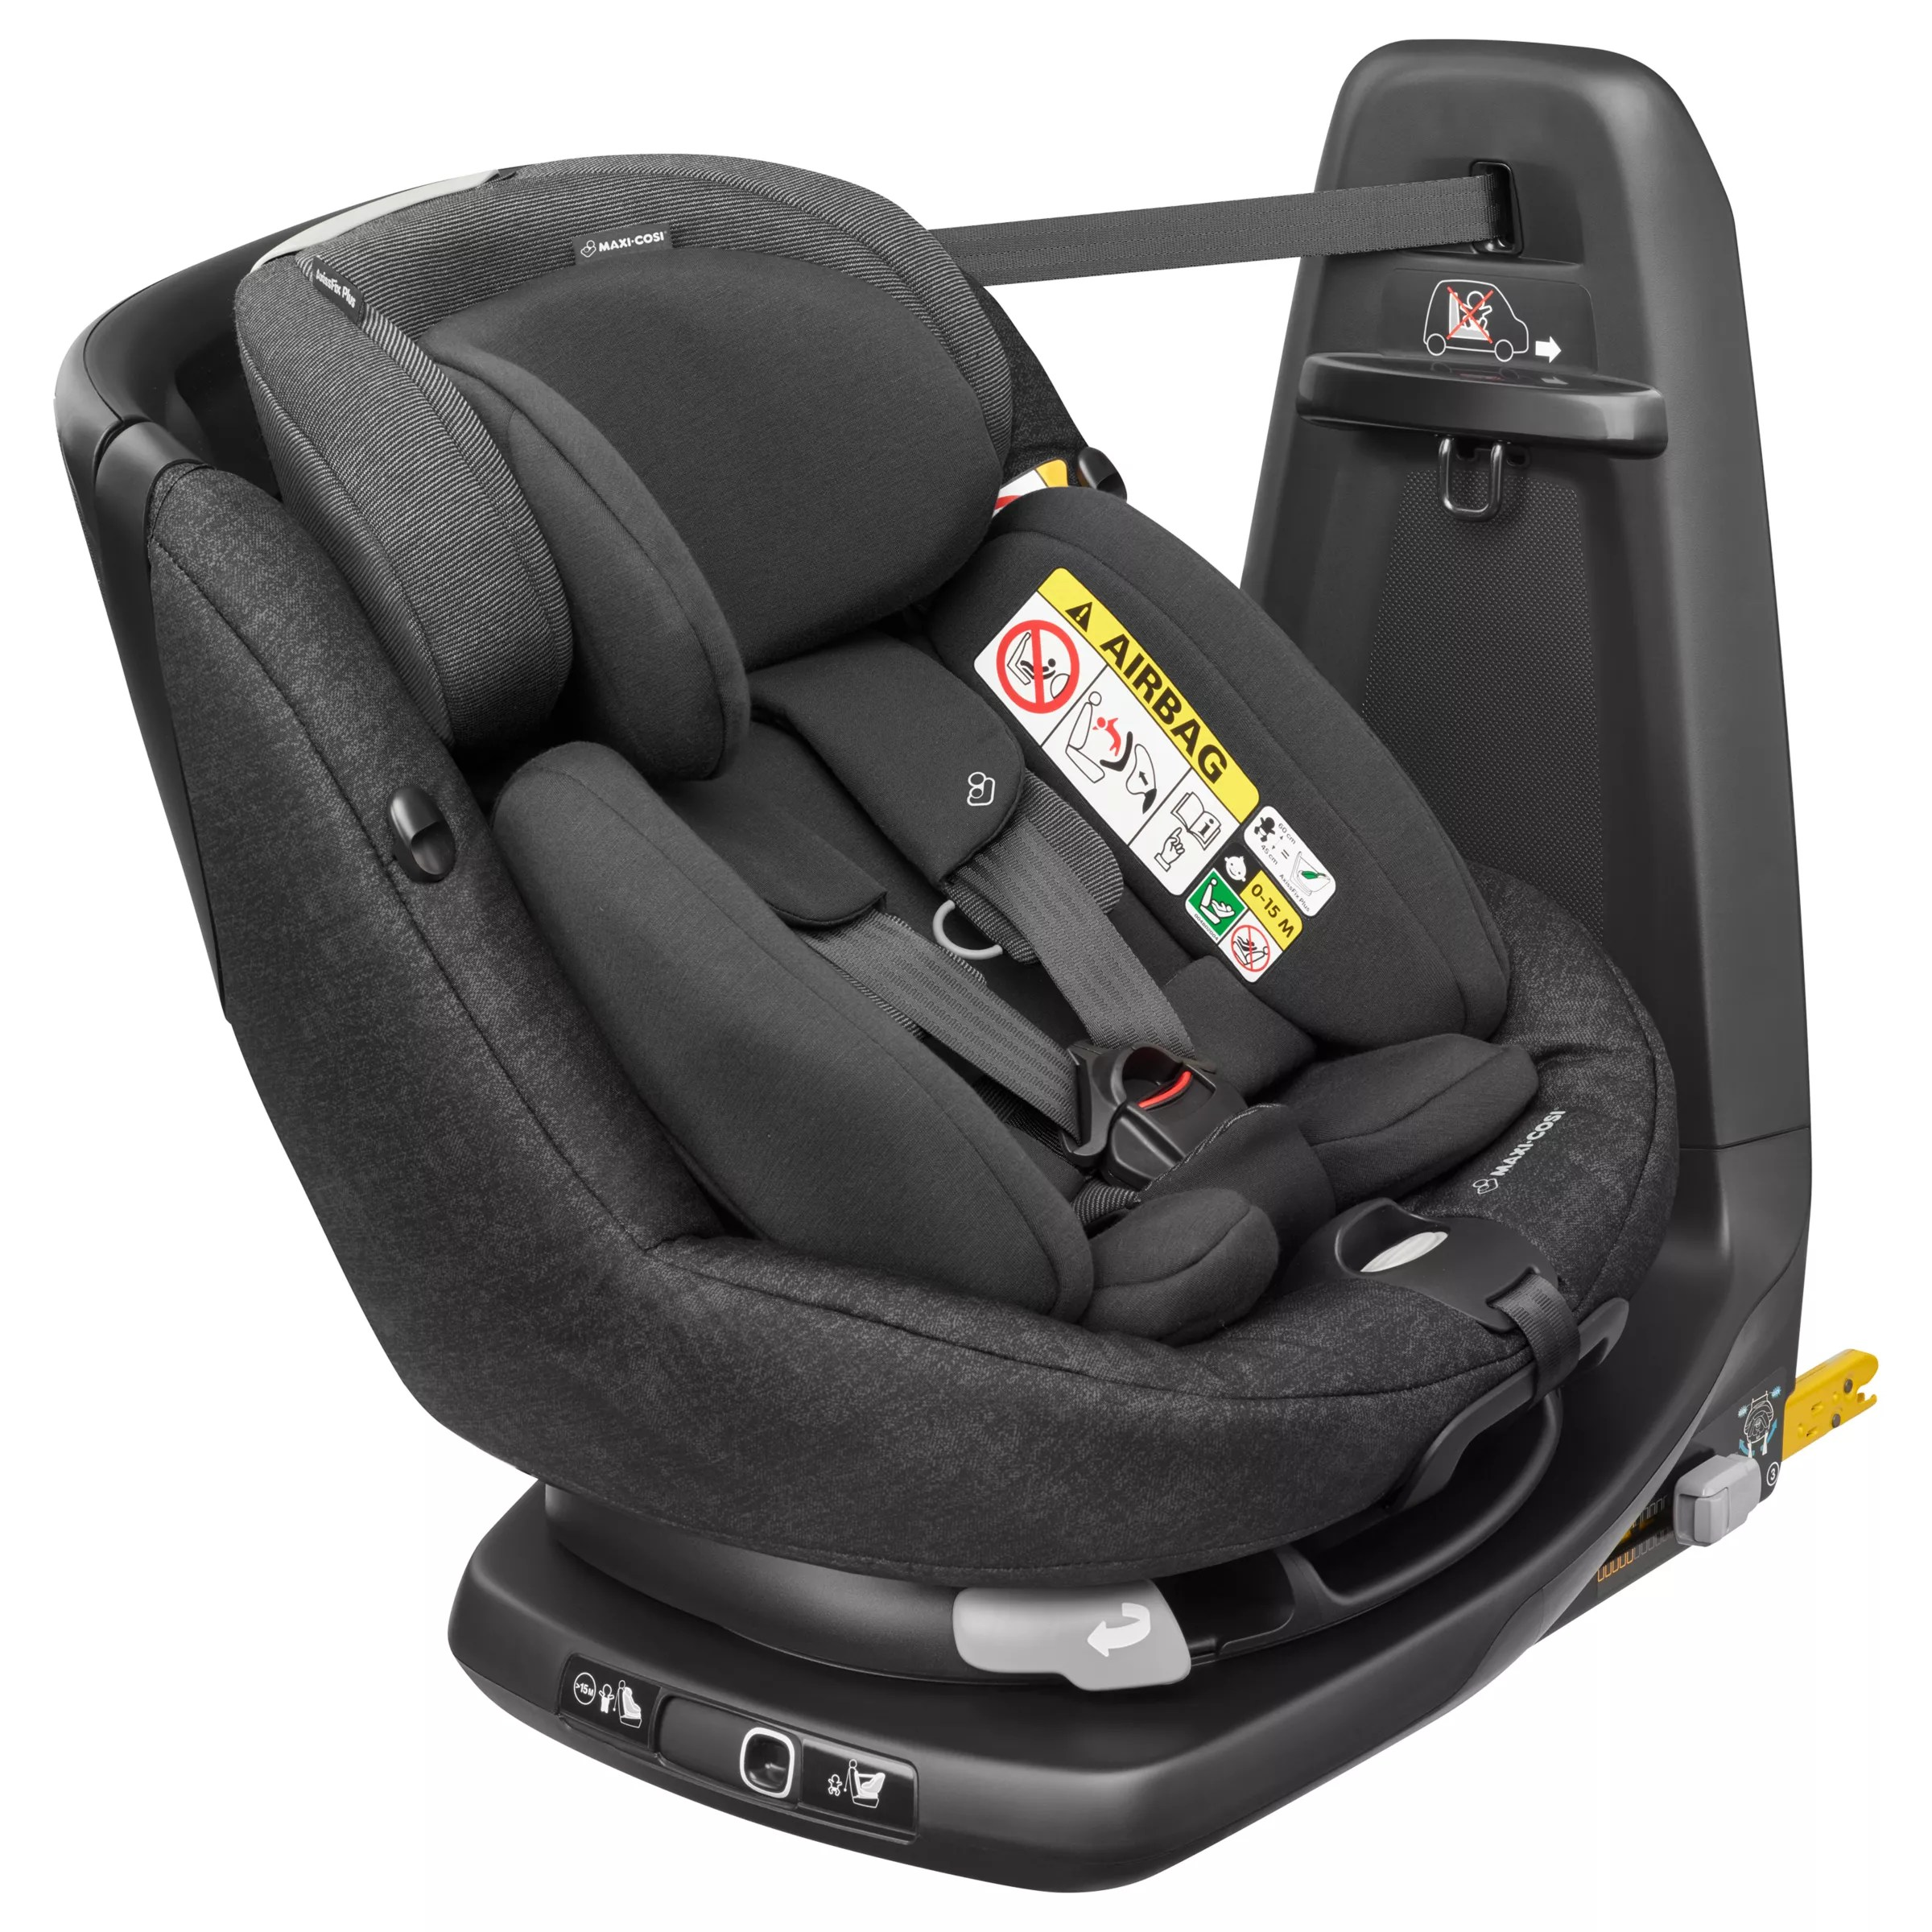 Child Safety Seat 2 Years Old Maxi Cosi Axissfix Plus Group And 1 Car Seat Nomad